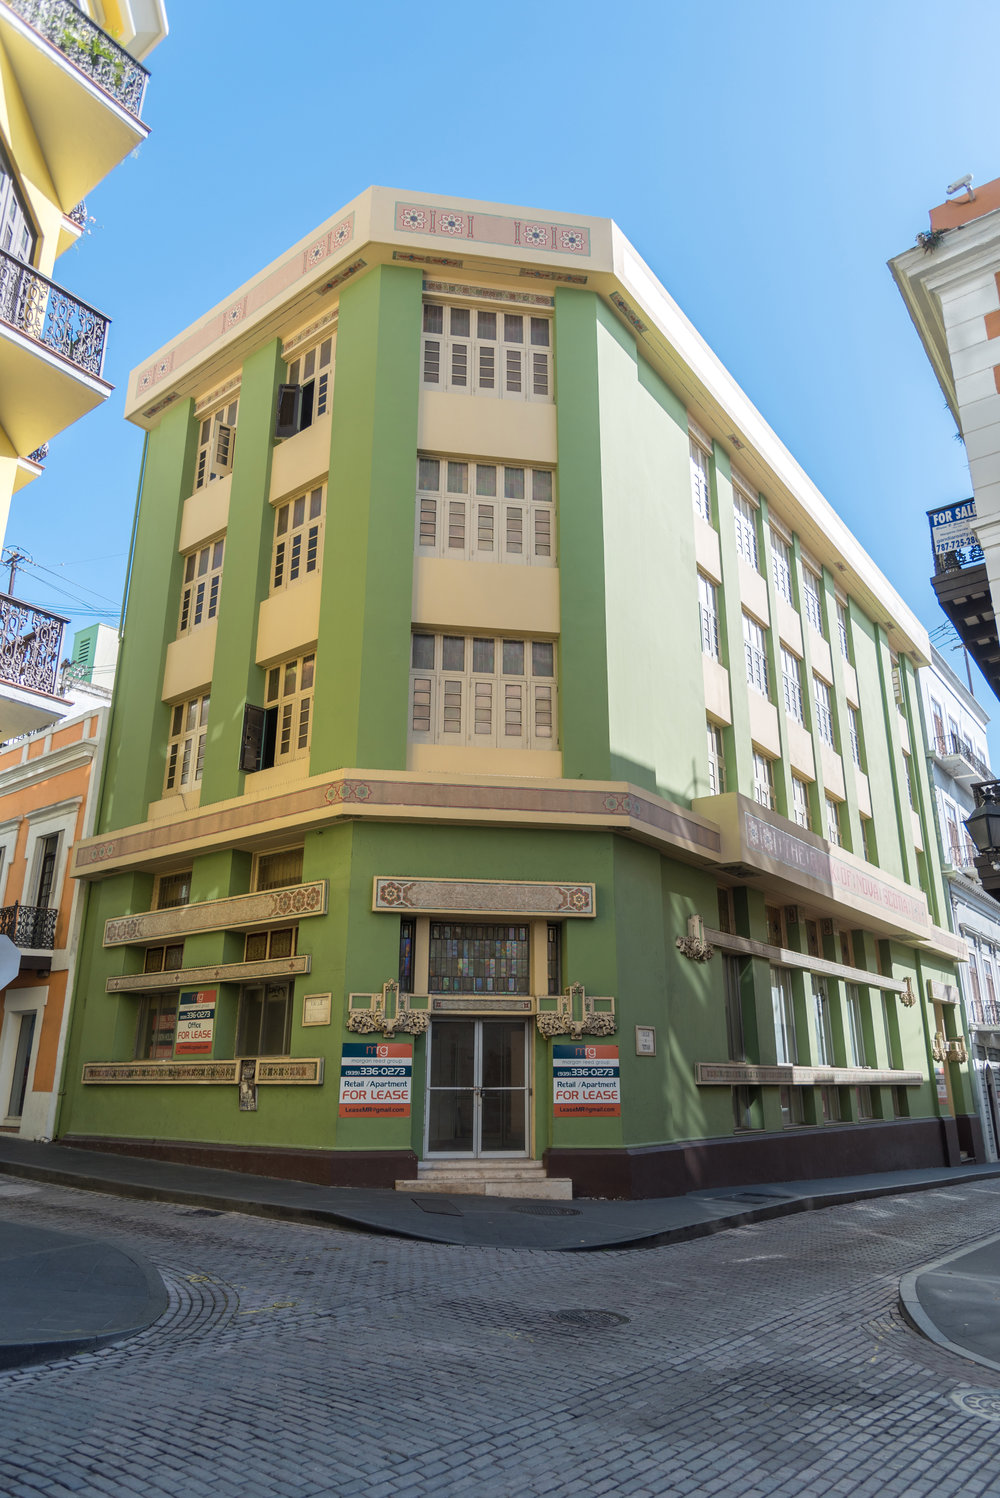 SCOTIABANK BUILDING    RETAIL/RESIDENTIAL CONVERSION - Old San Juan, Puerto Rico    Historic Scotiabank building located in Old San Juan